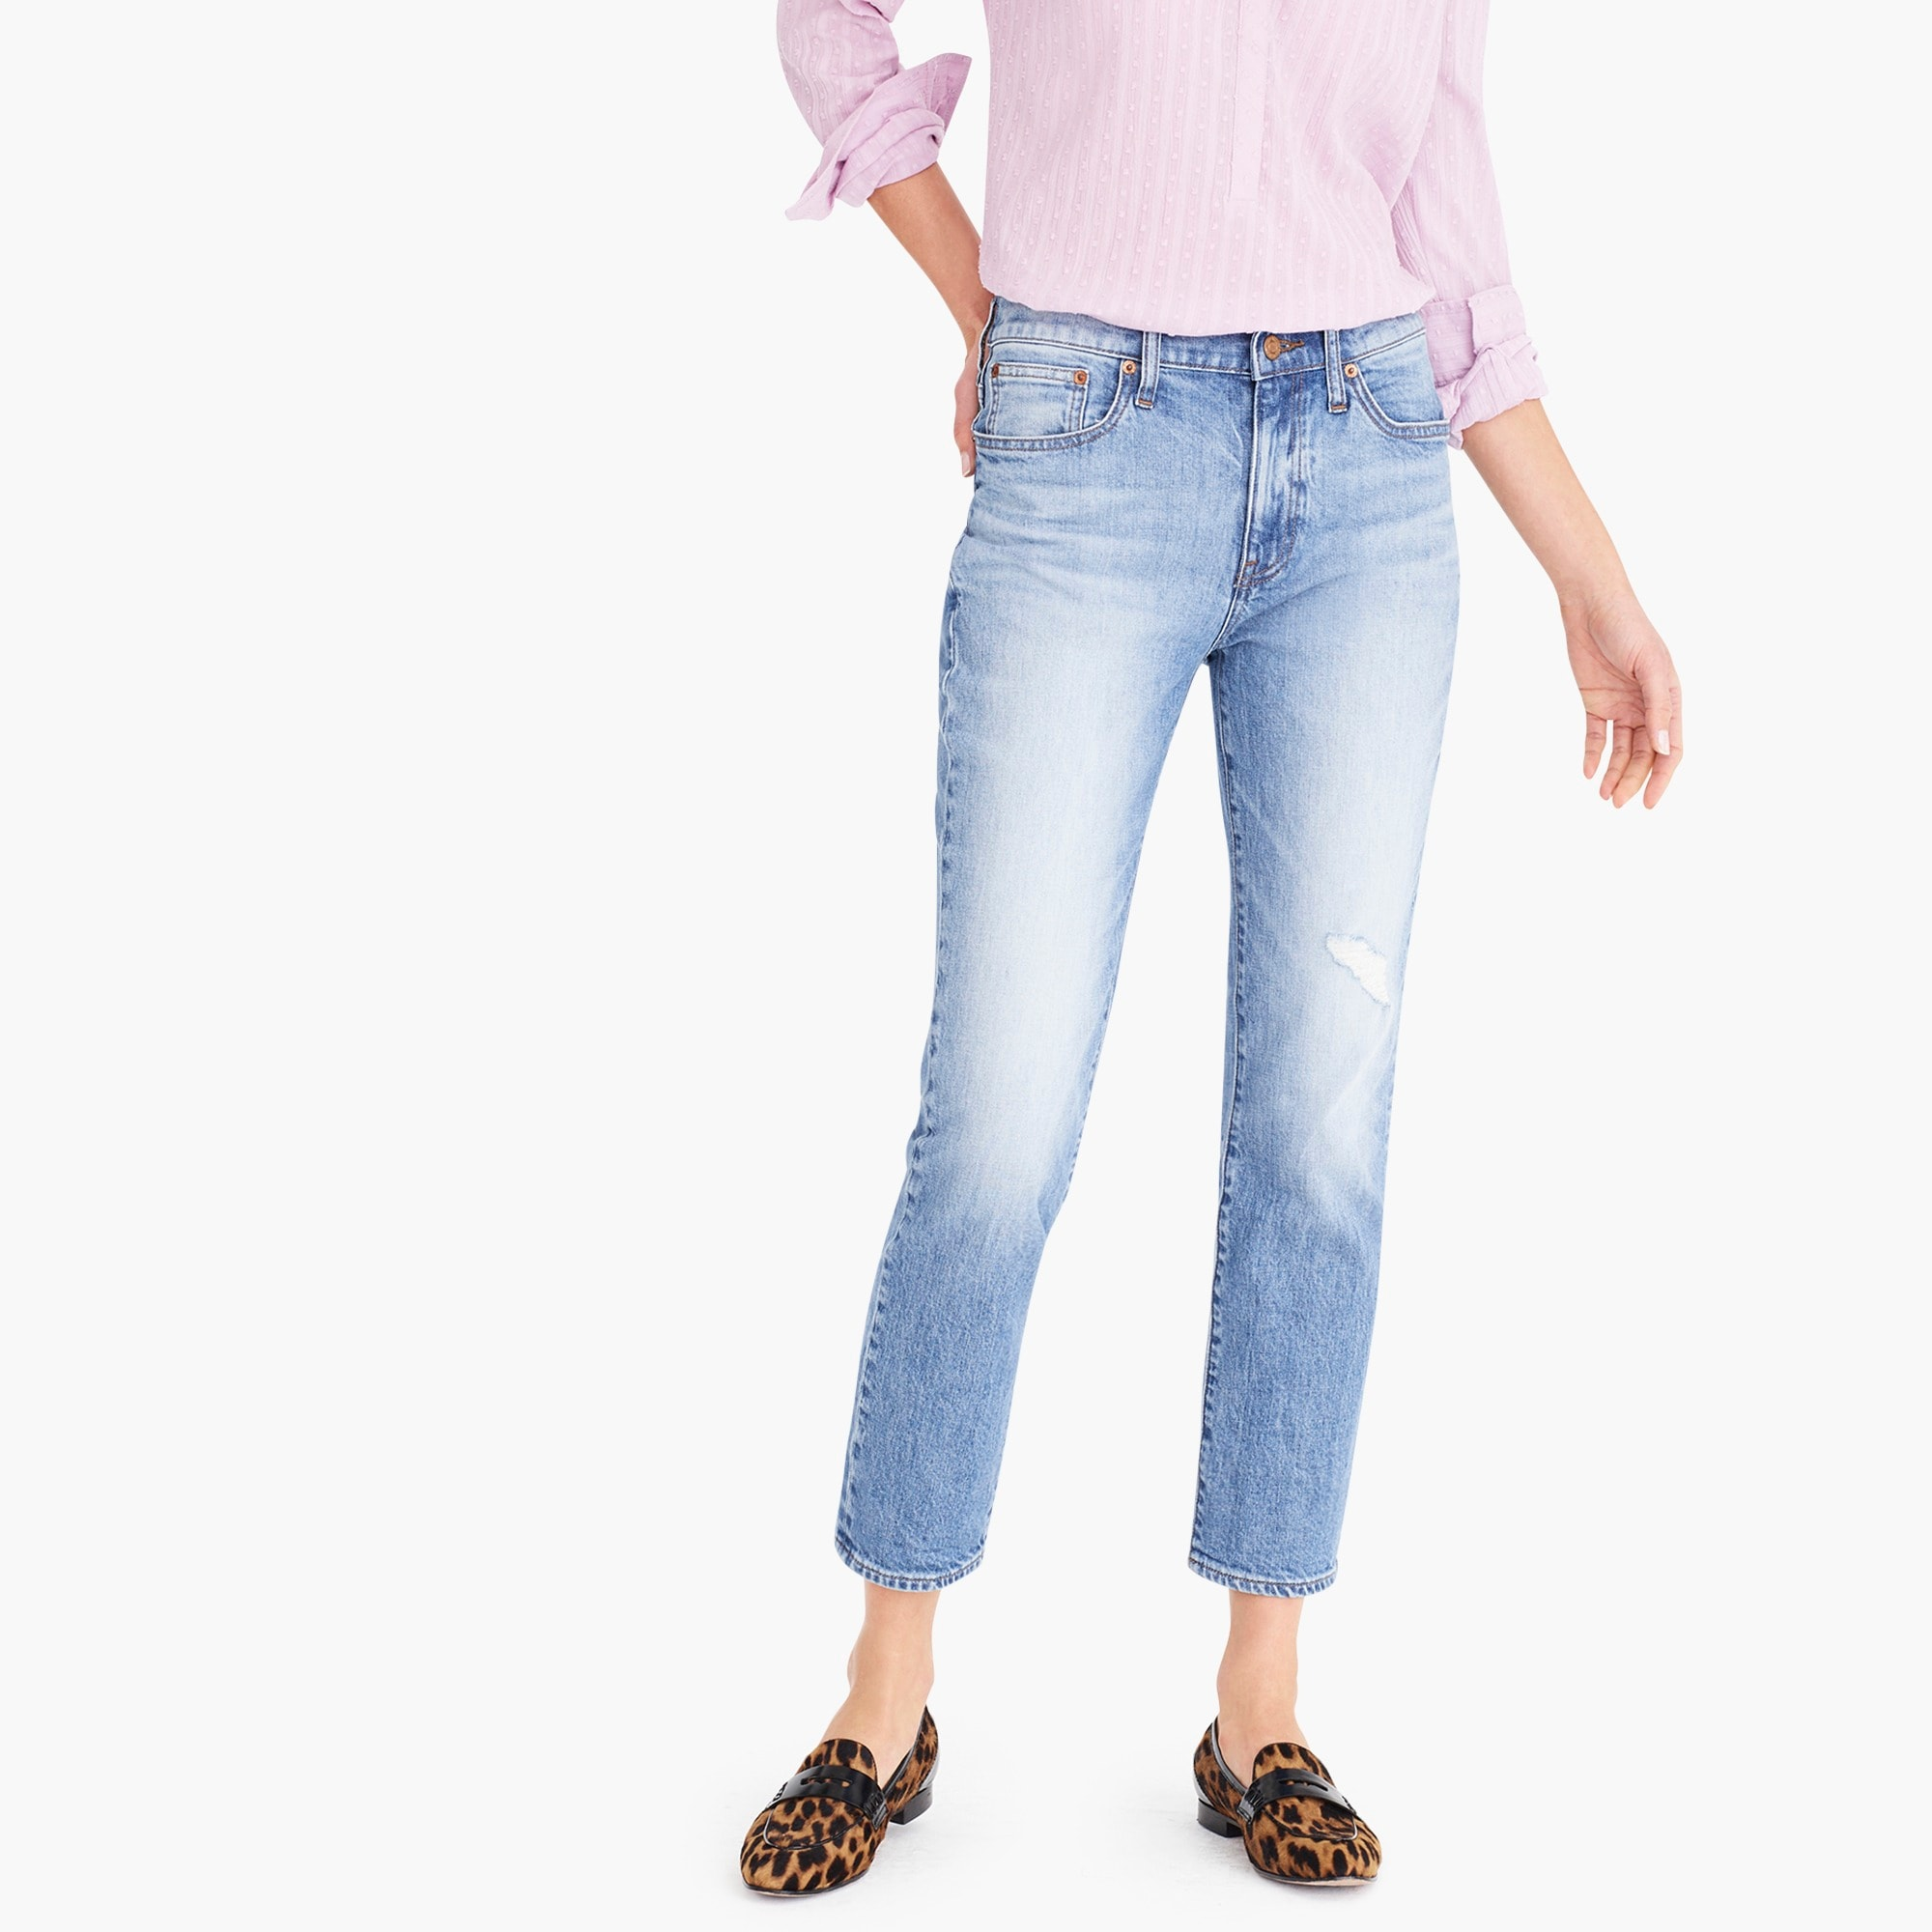 womens Slim boyfriend eco jean in Warm Seaside wash